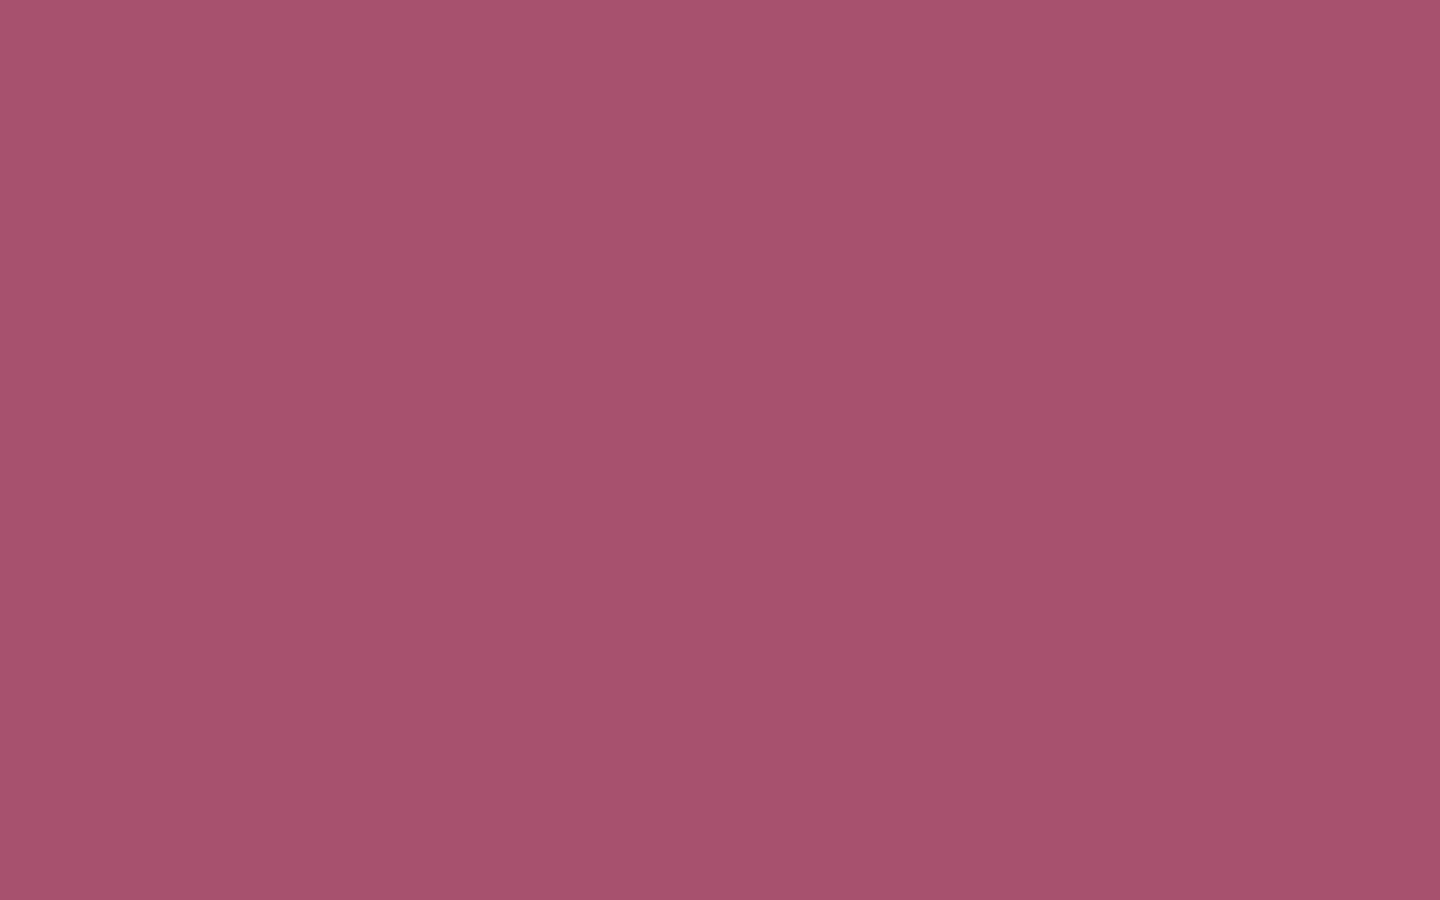 1440x900 China Rose Solid Color Background